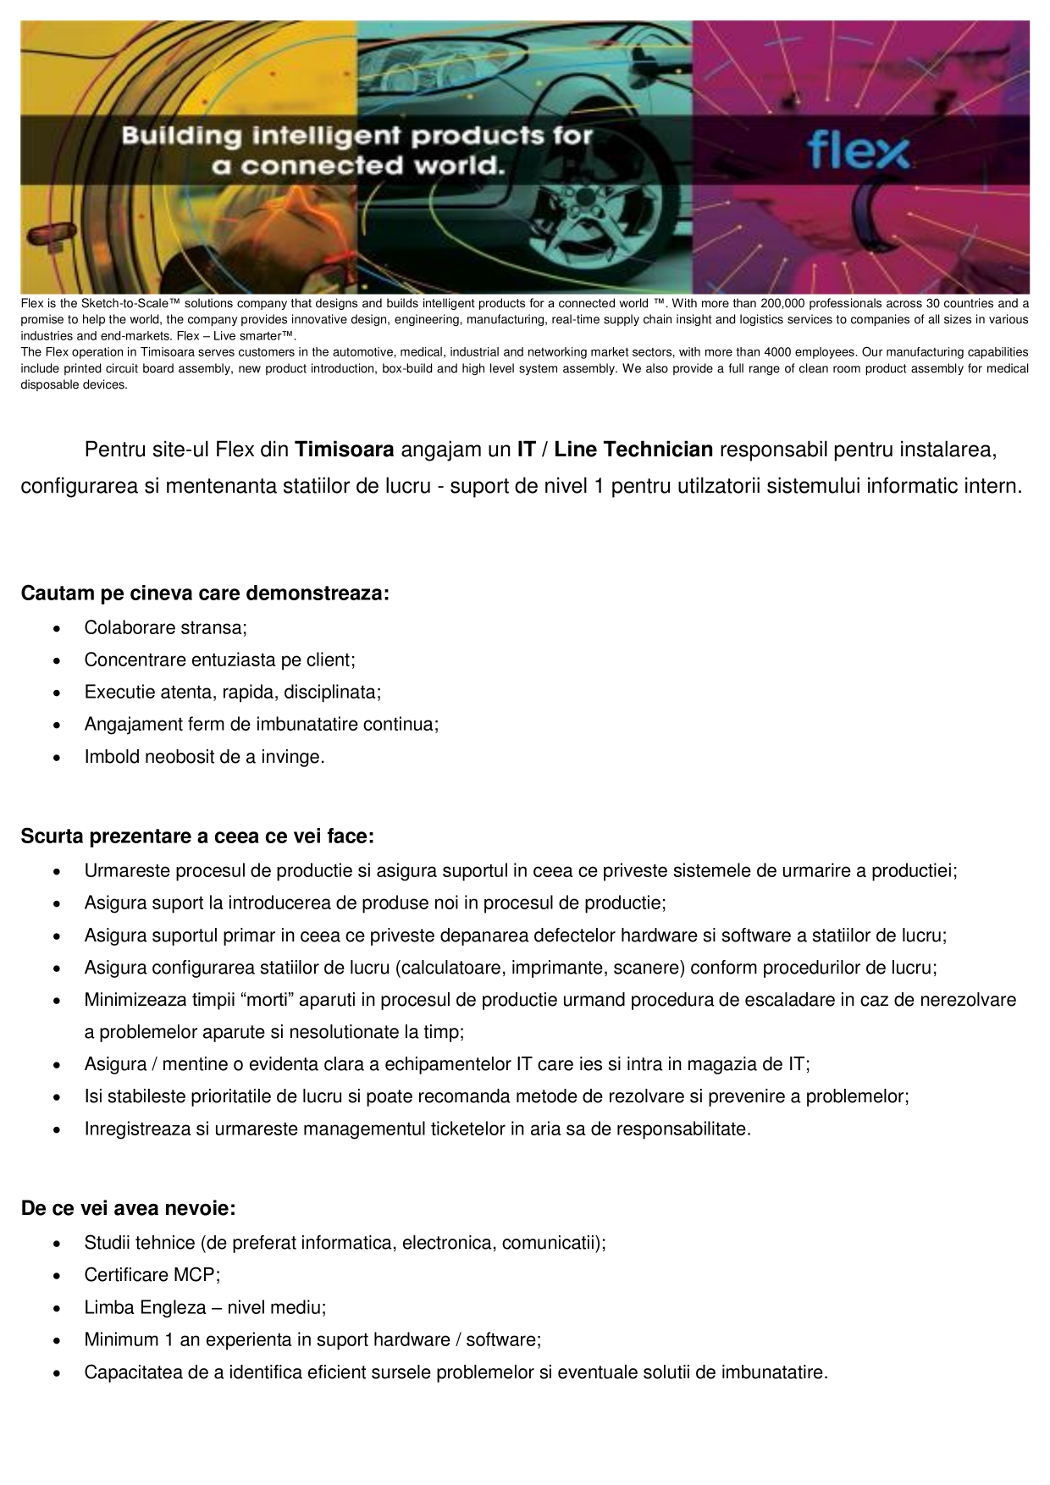 Anunt extern - IT-Line Technician111